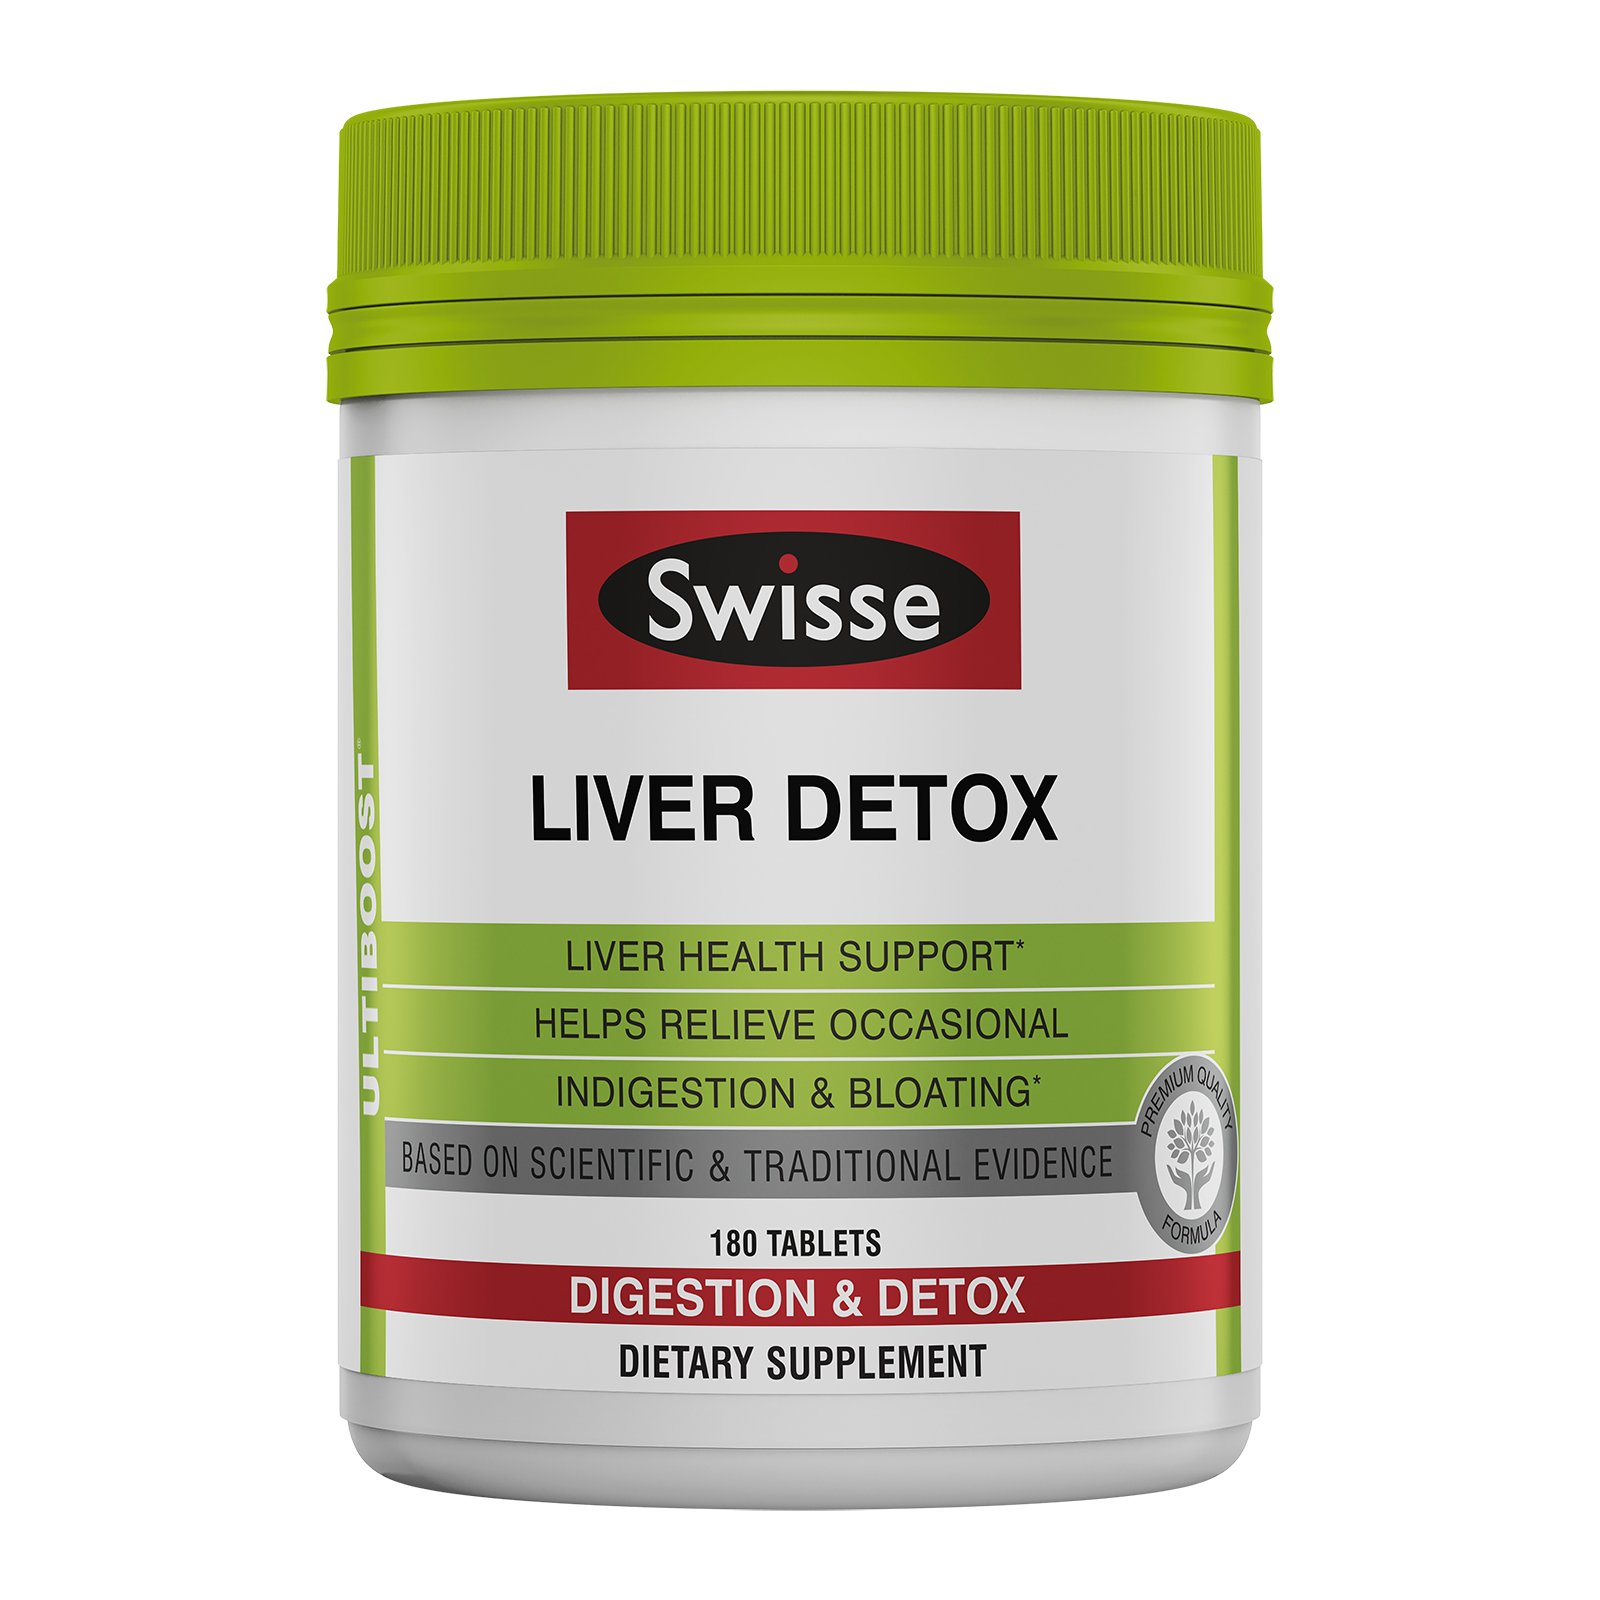 Swisse Ultiboost Liver Detox Tablets, 180 Count, Traditional Herbal Based Supplement, Supports Liver Health and Function*